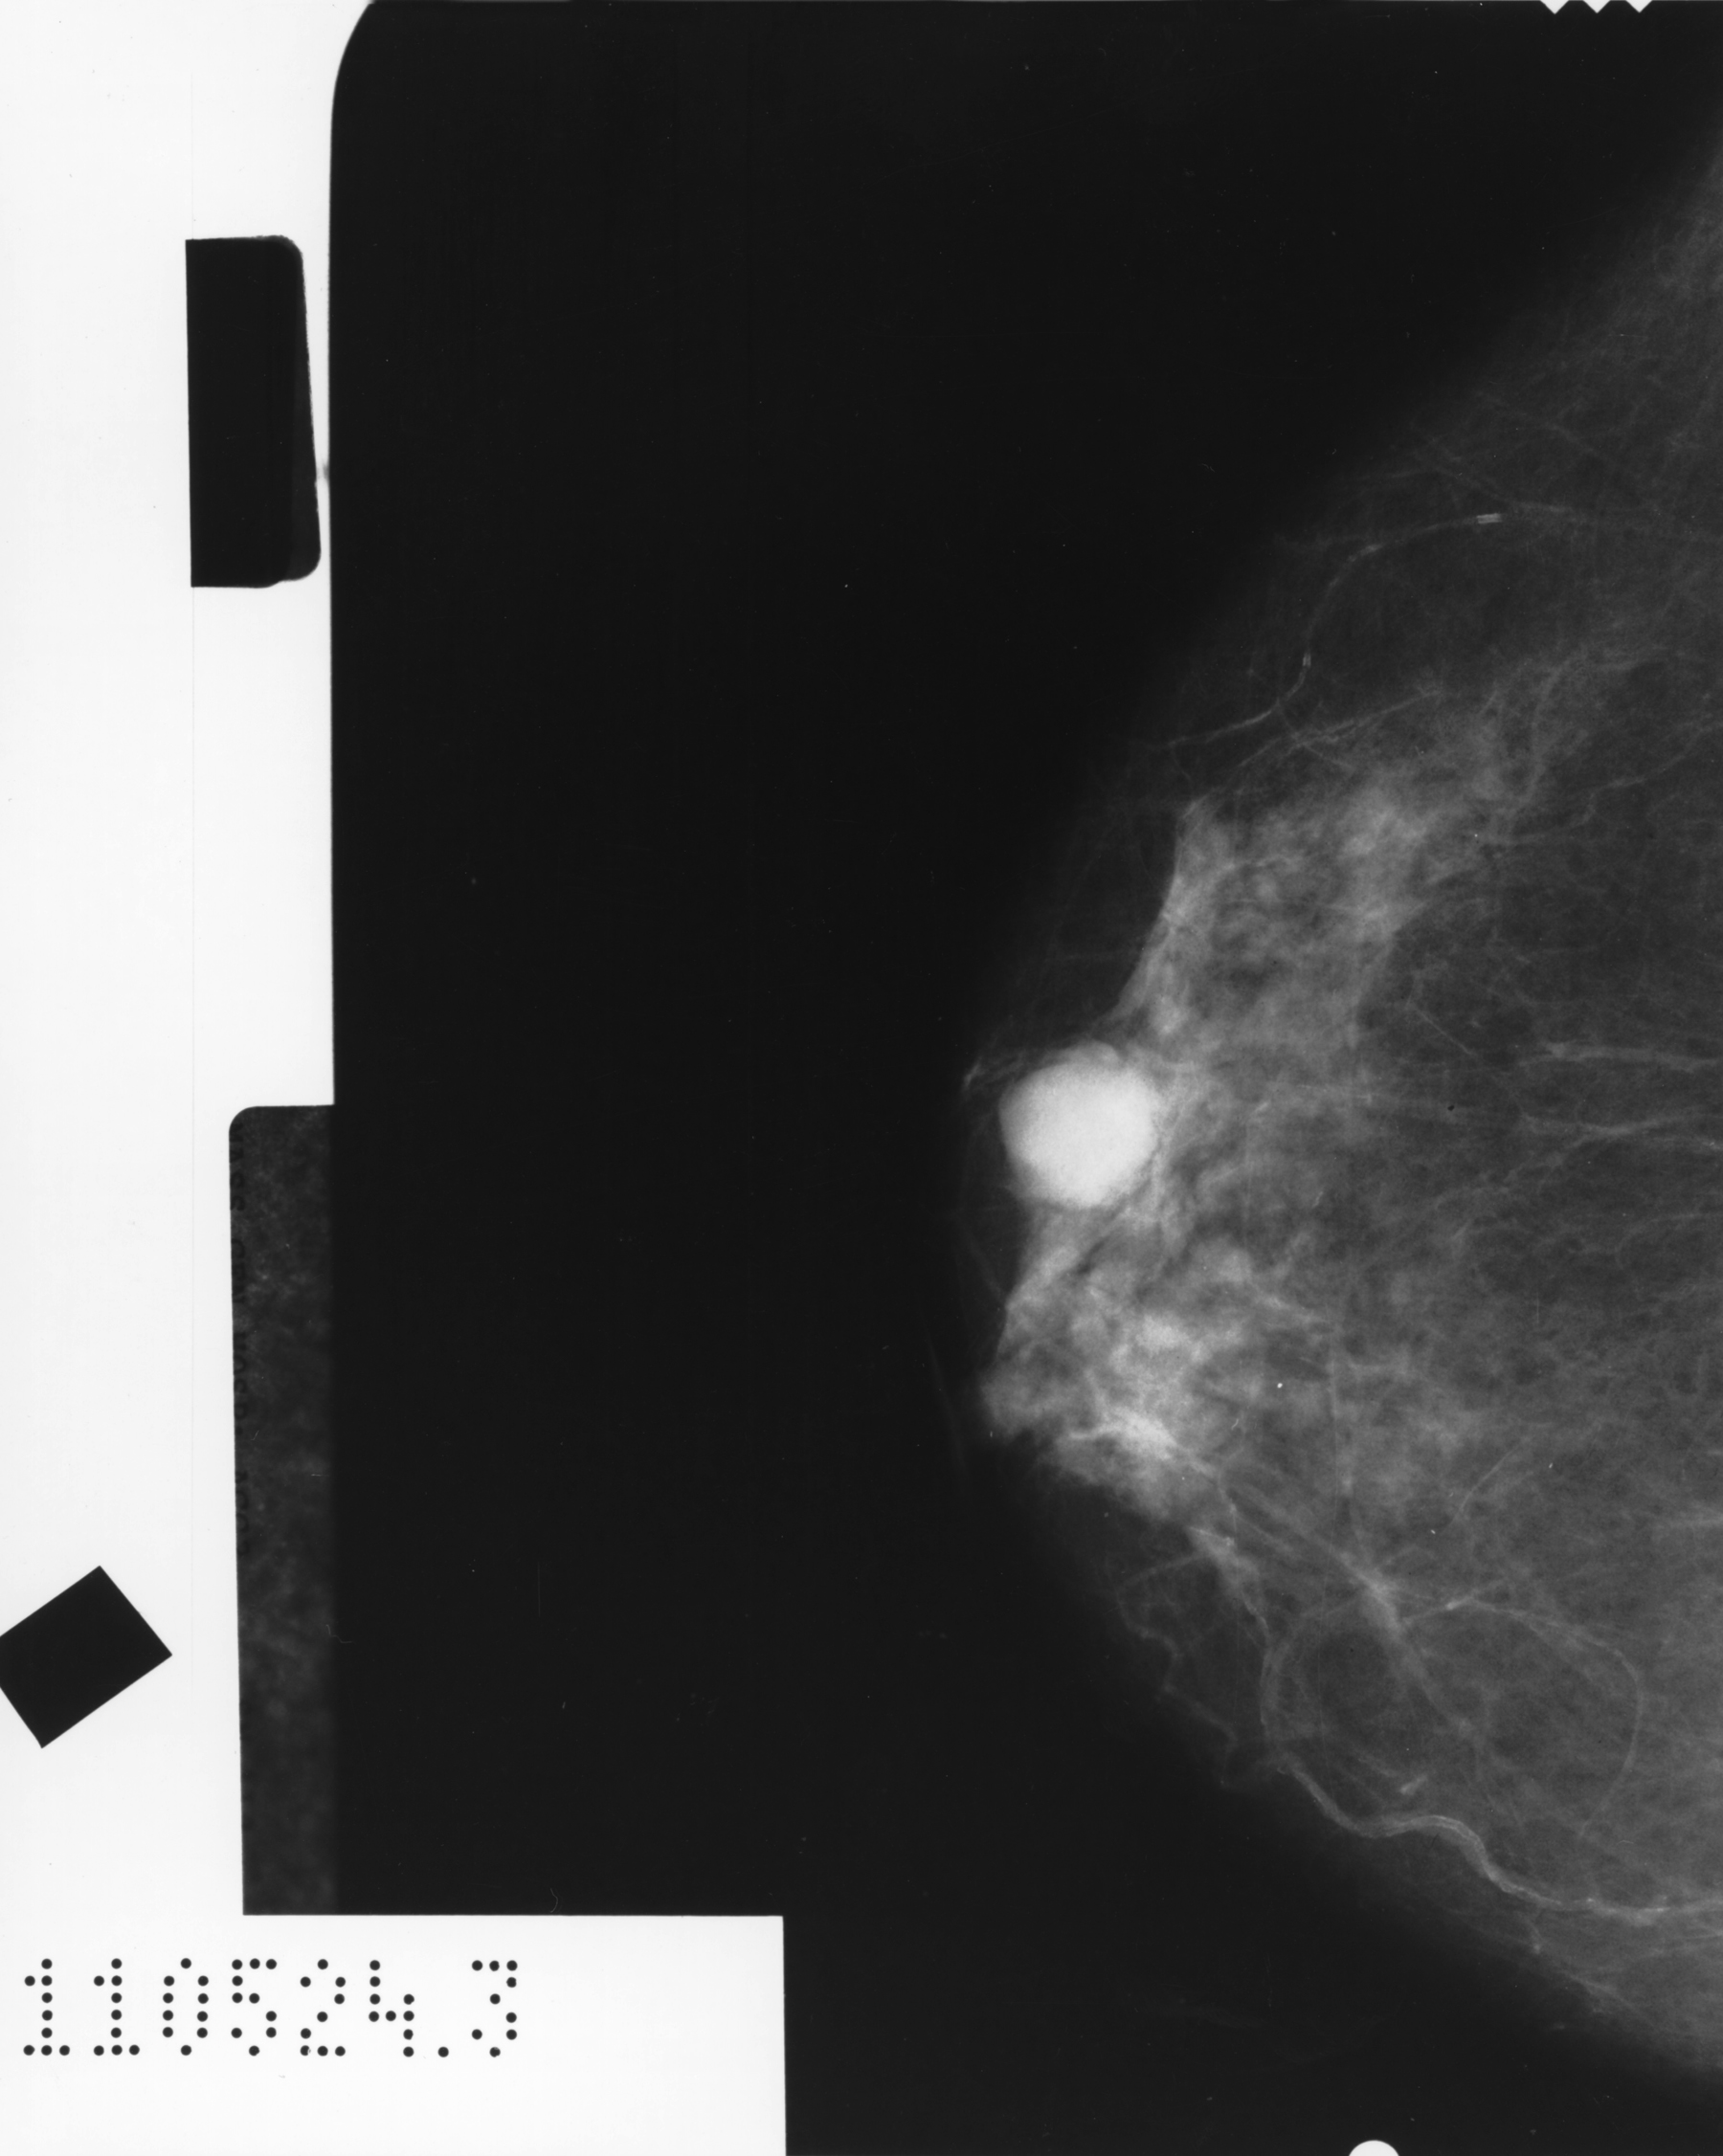 What to Look For During Self-Breast Exam Besides Feeling Lumps